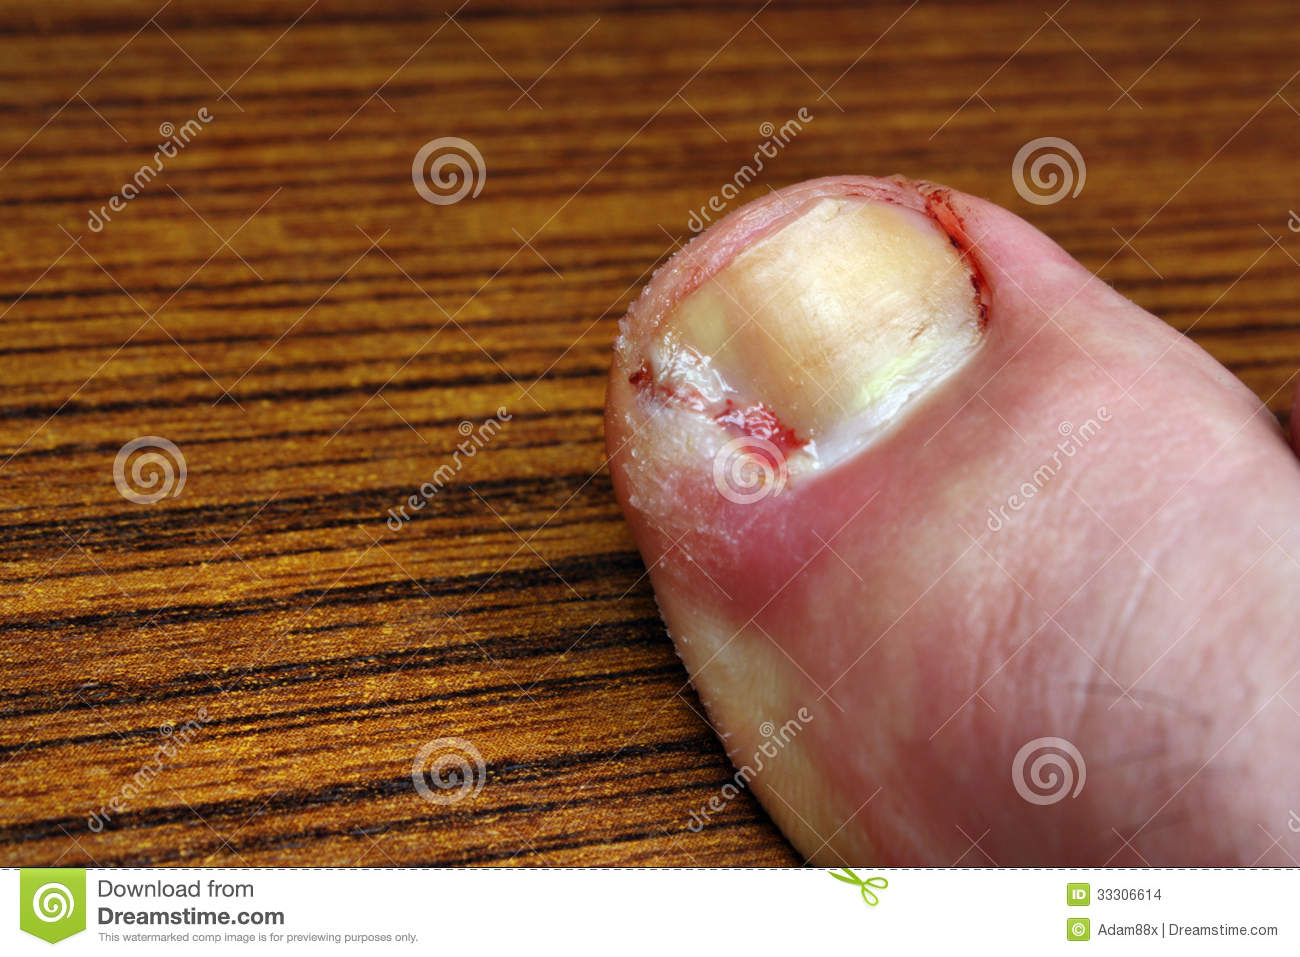 Toenail stock photo. Image of pedicure, deformed, chipped - 33306614